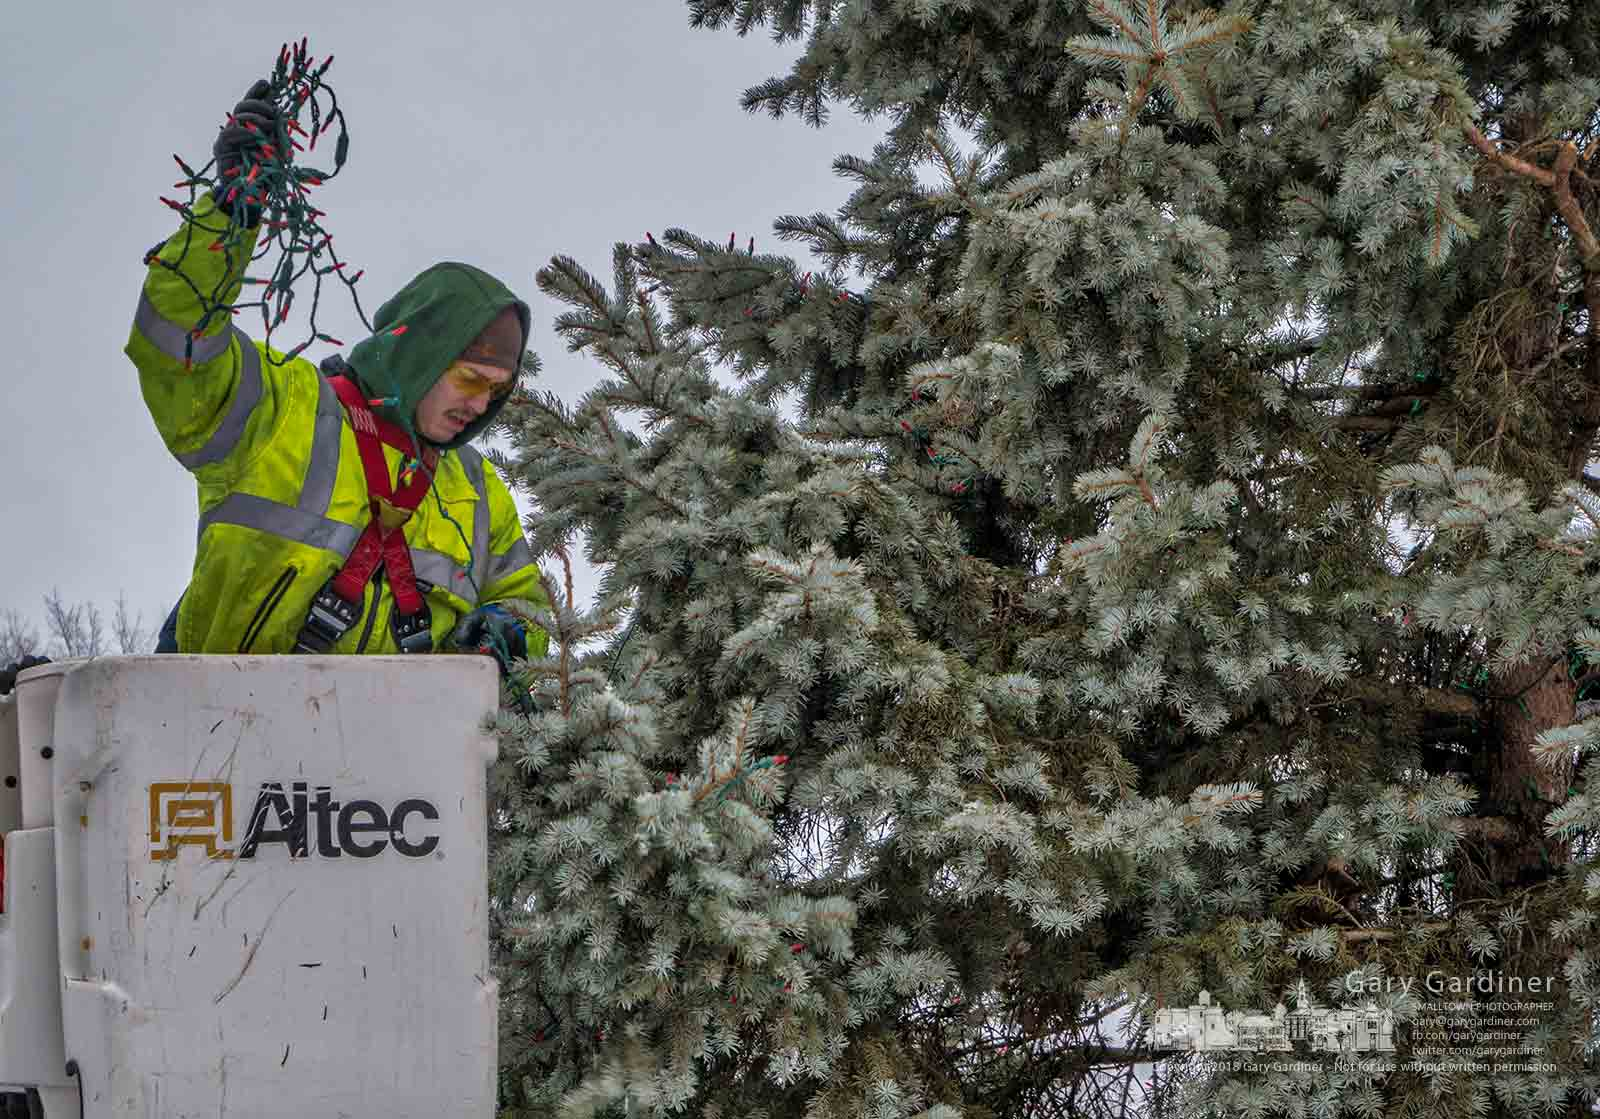 A city electrician removes strands of LED lights from the evergreen tree in front of city hall that stood during the Christmas season. My Final Photo for Jan. 8, 2018.